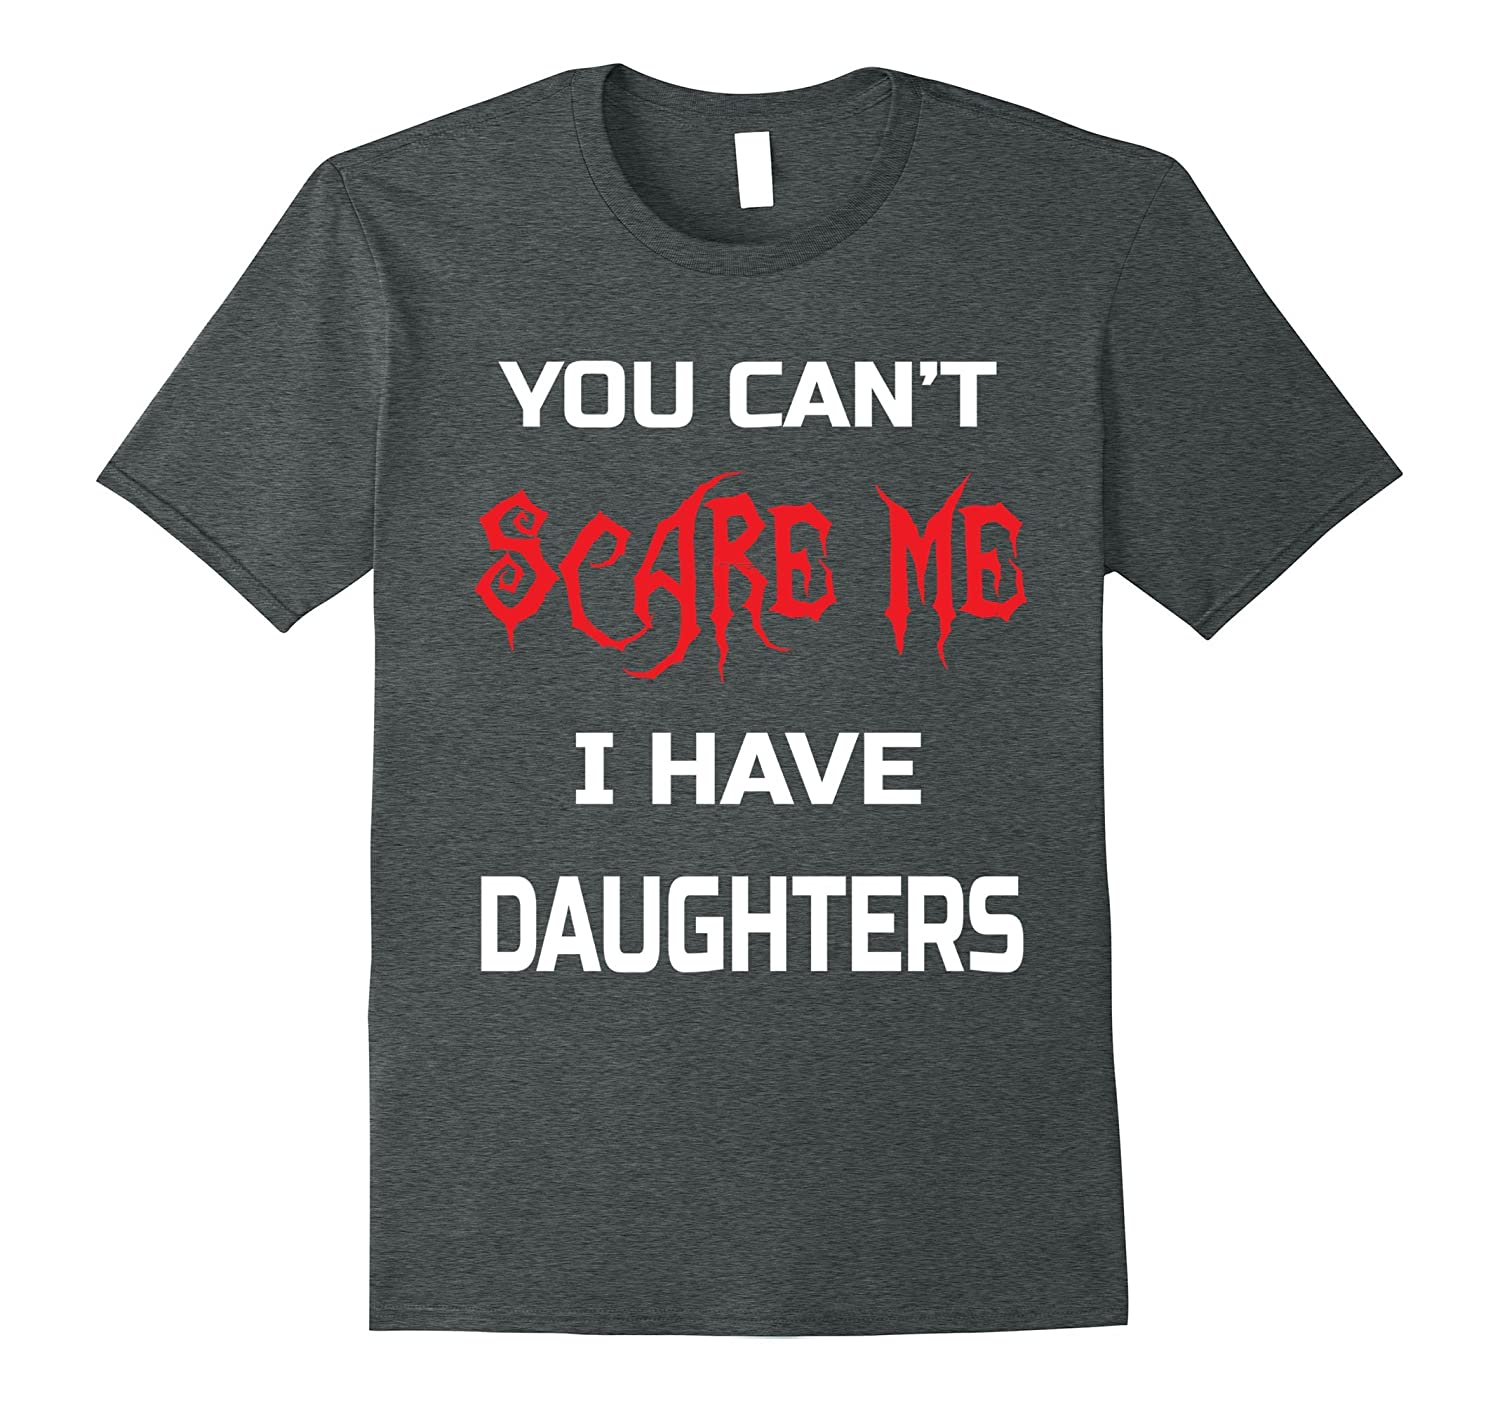 You Can't Scare Me I Have Daughters T-shirt Dads & Moms Gift